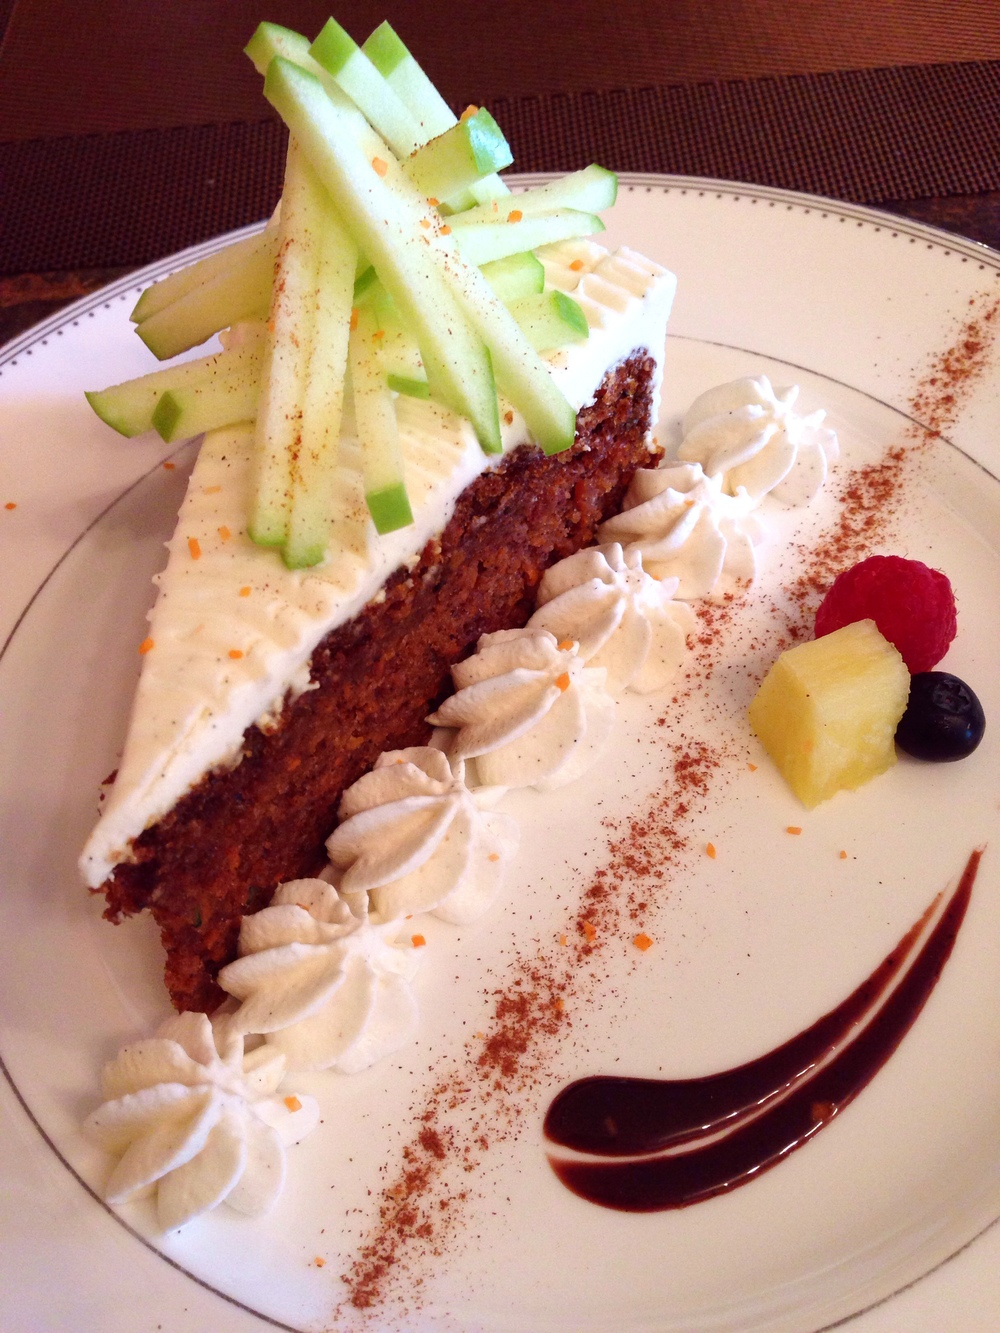 THE amazing carrot cake!